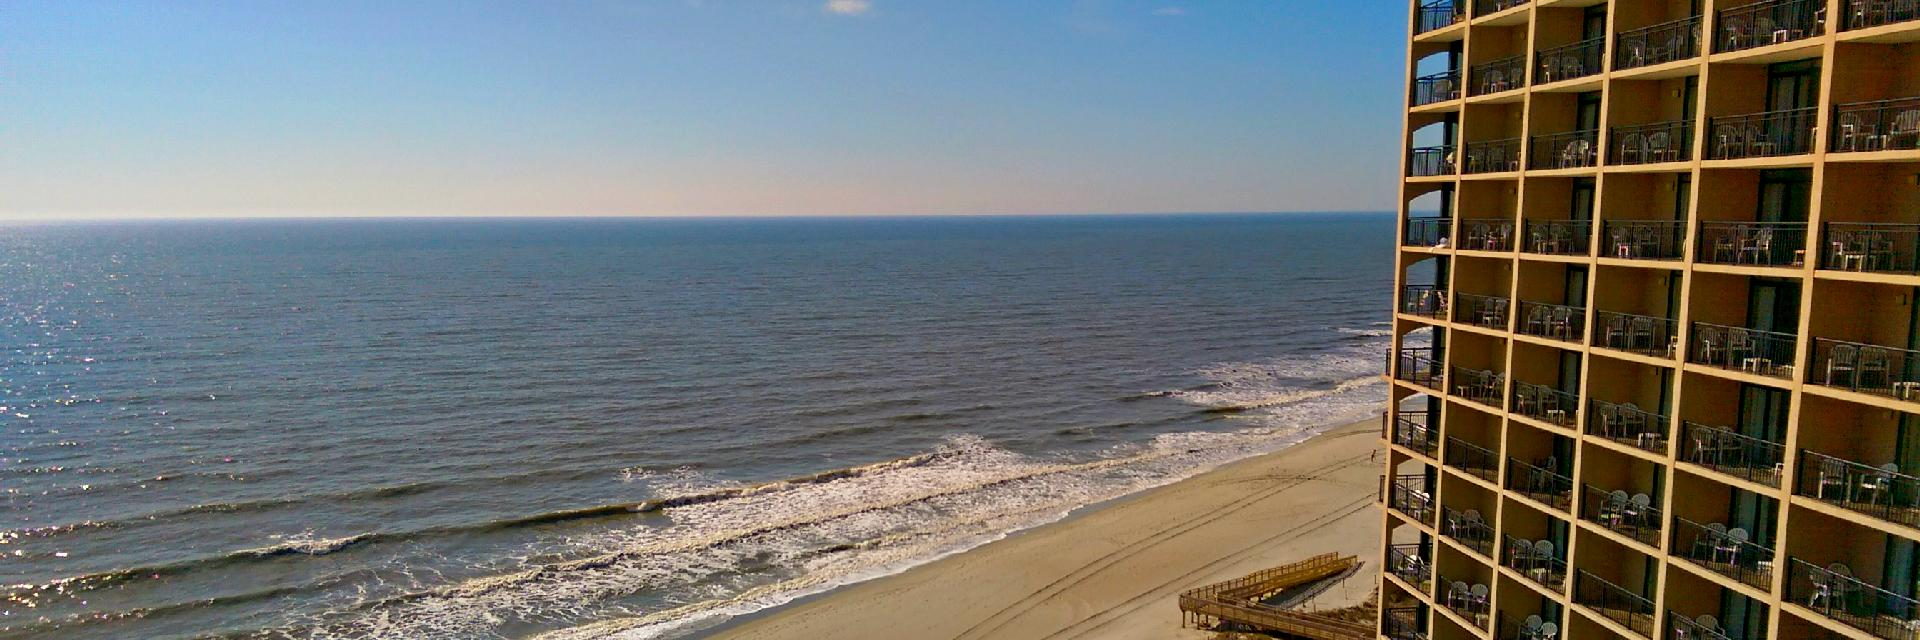 Oceanfront Condos For Sale Beach Cove North Myrtle Beach